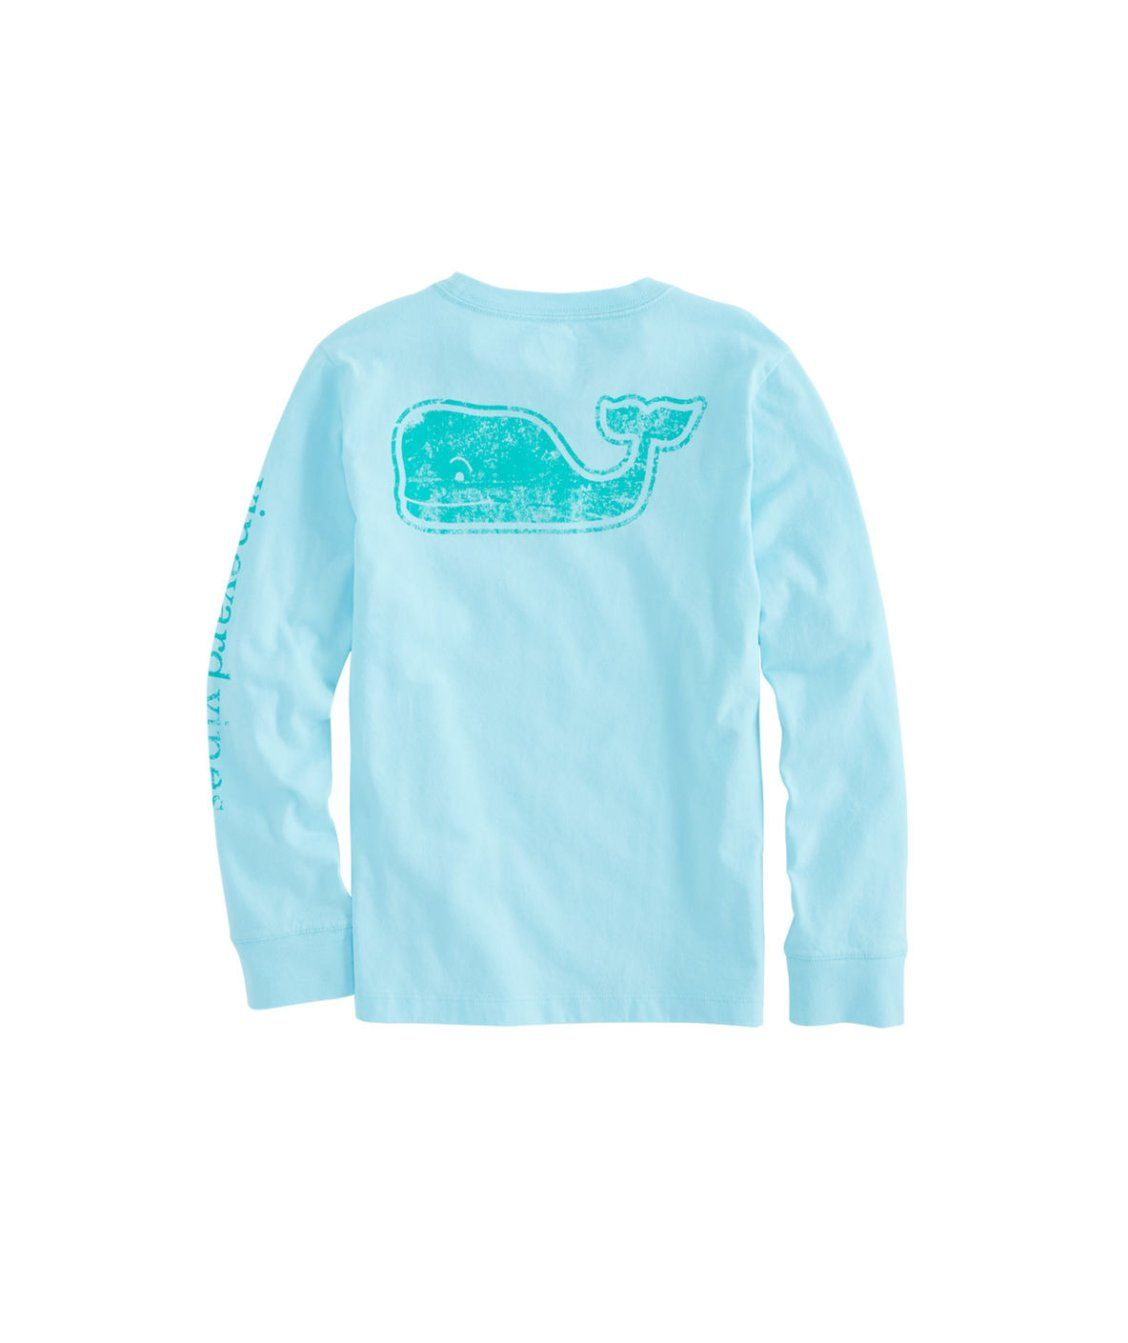 33d308a8 Boys Long-Sleeve Vintage Whale Fill Pocket T-Shirt | new arrivals ...